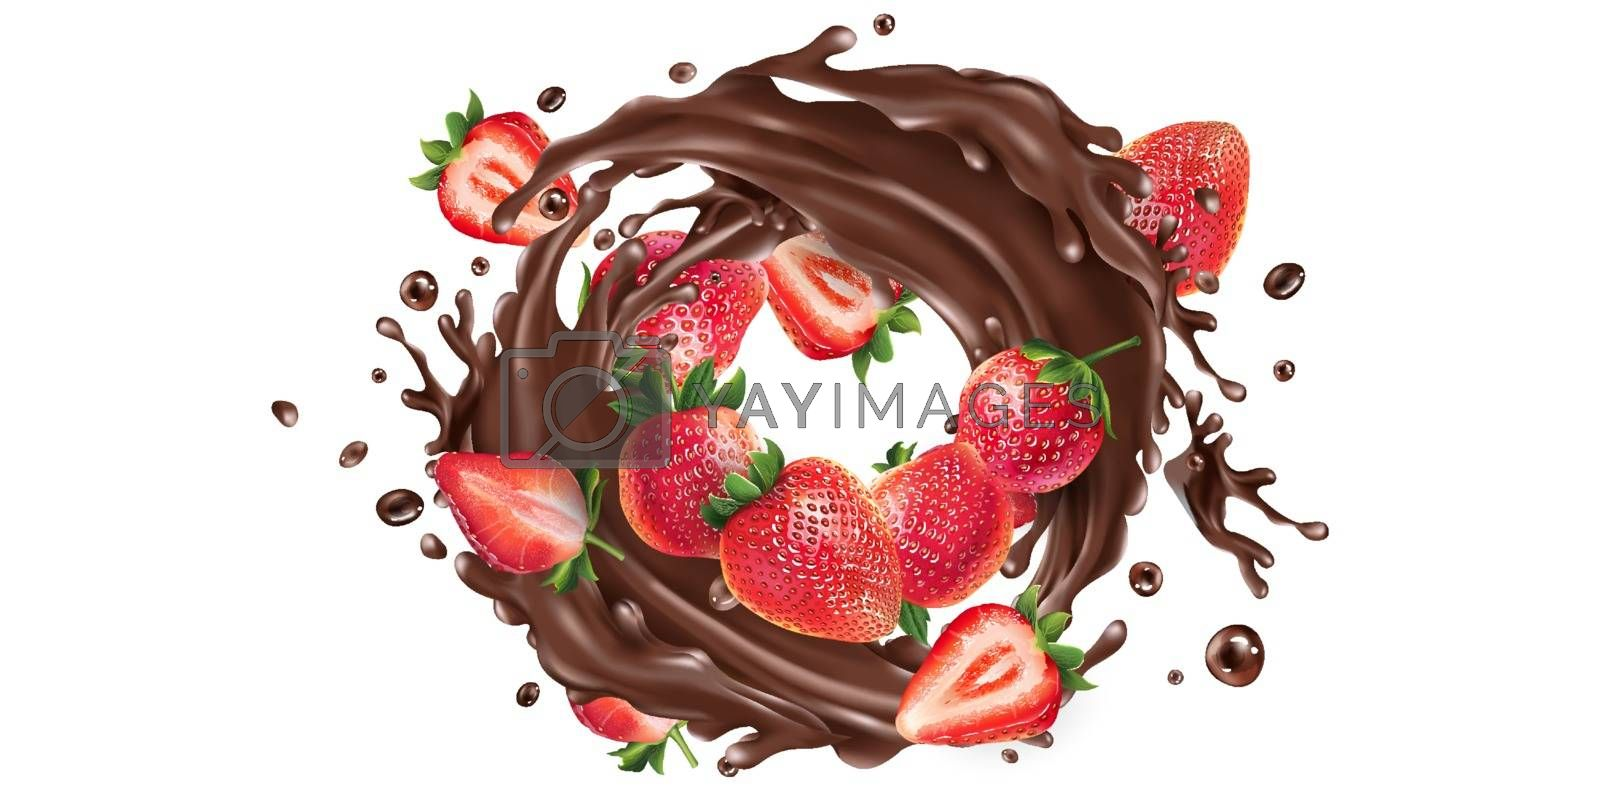 Fresh strawberries and a splash of liquid chocolate on a white background. Realistic vector illustration.